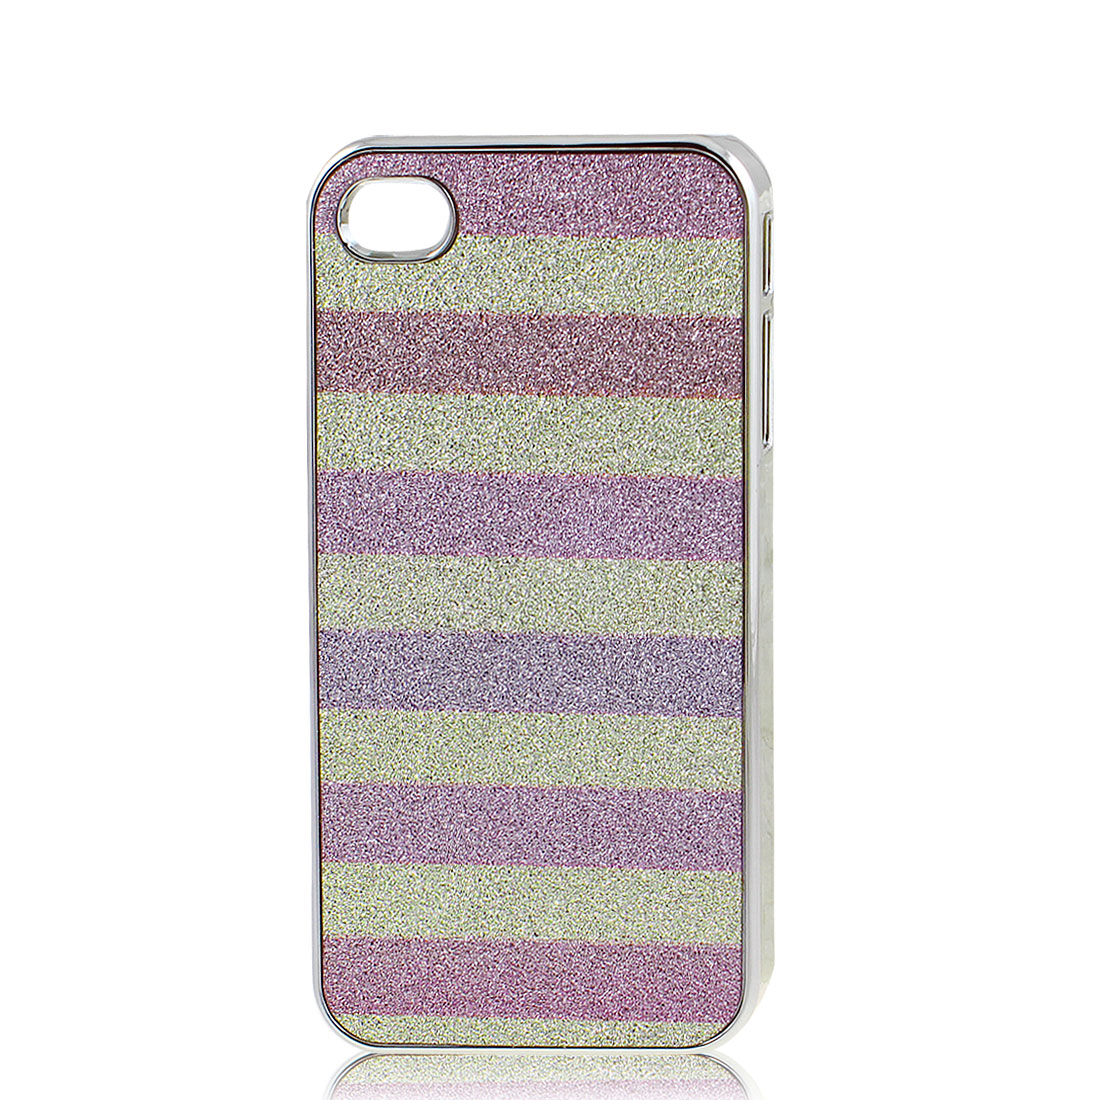 Colorful Stripes Pattern Shiny Hard Plastic Back Case Cover for iPhone 4 4G